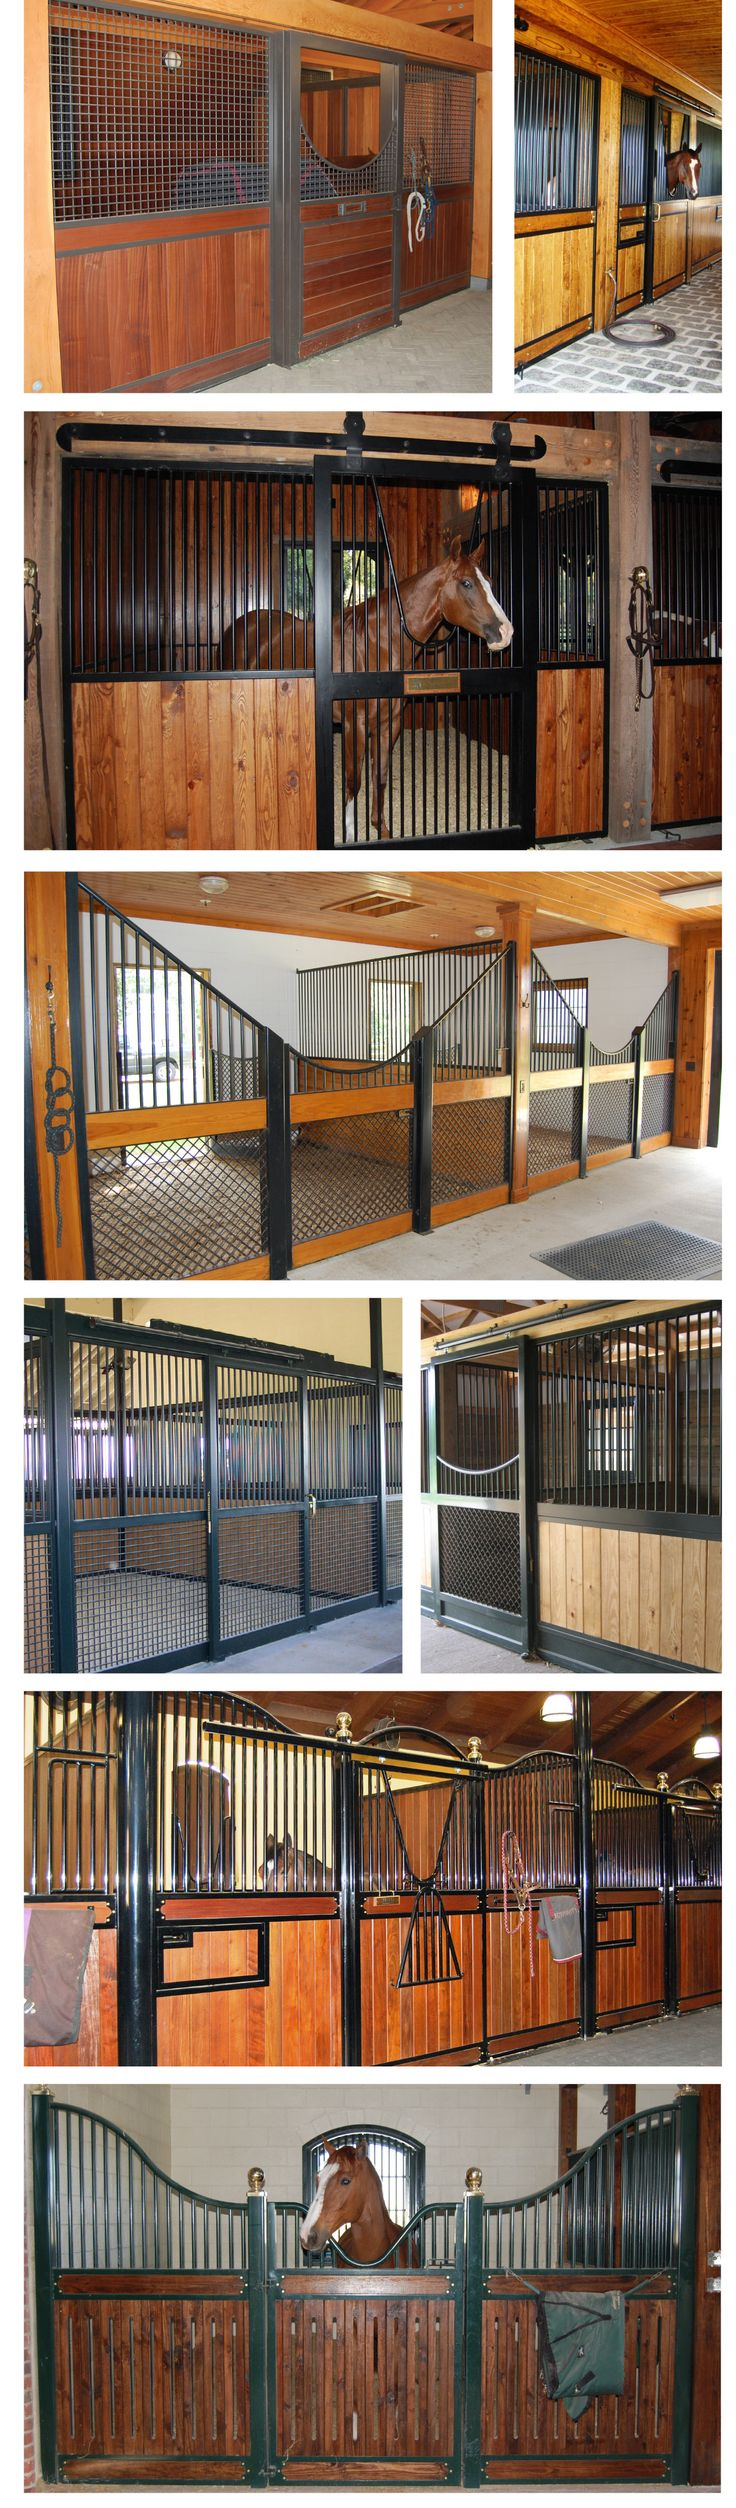 Lucas Equine stall fronts -- Some of these would work really nicely in my future stable. The more visibility and access to other horses they offer the better